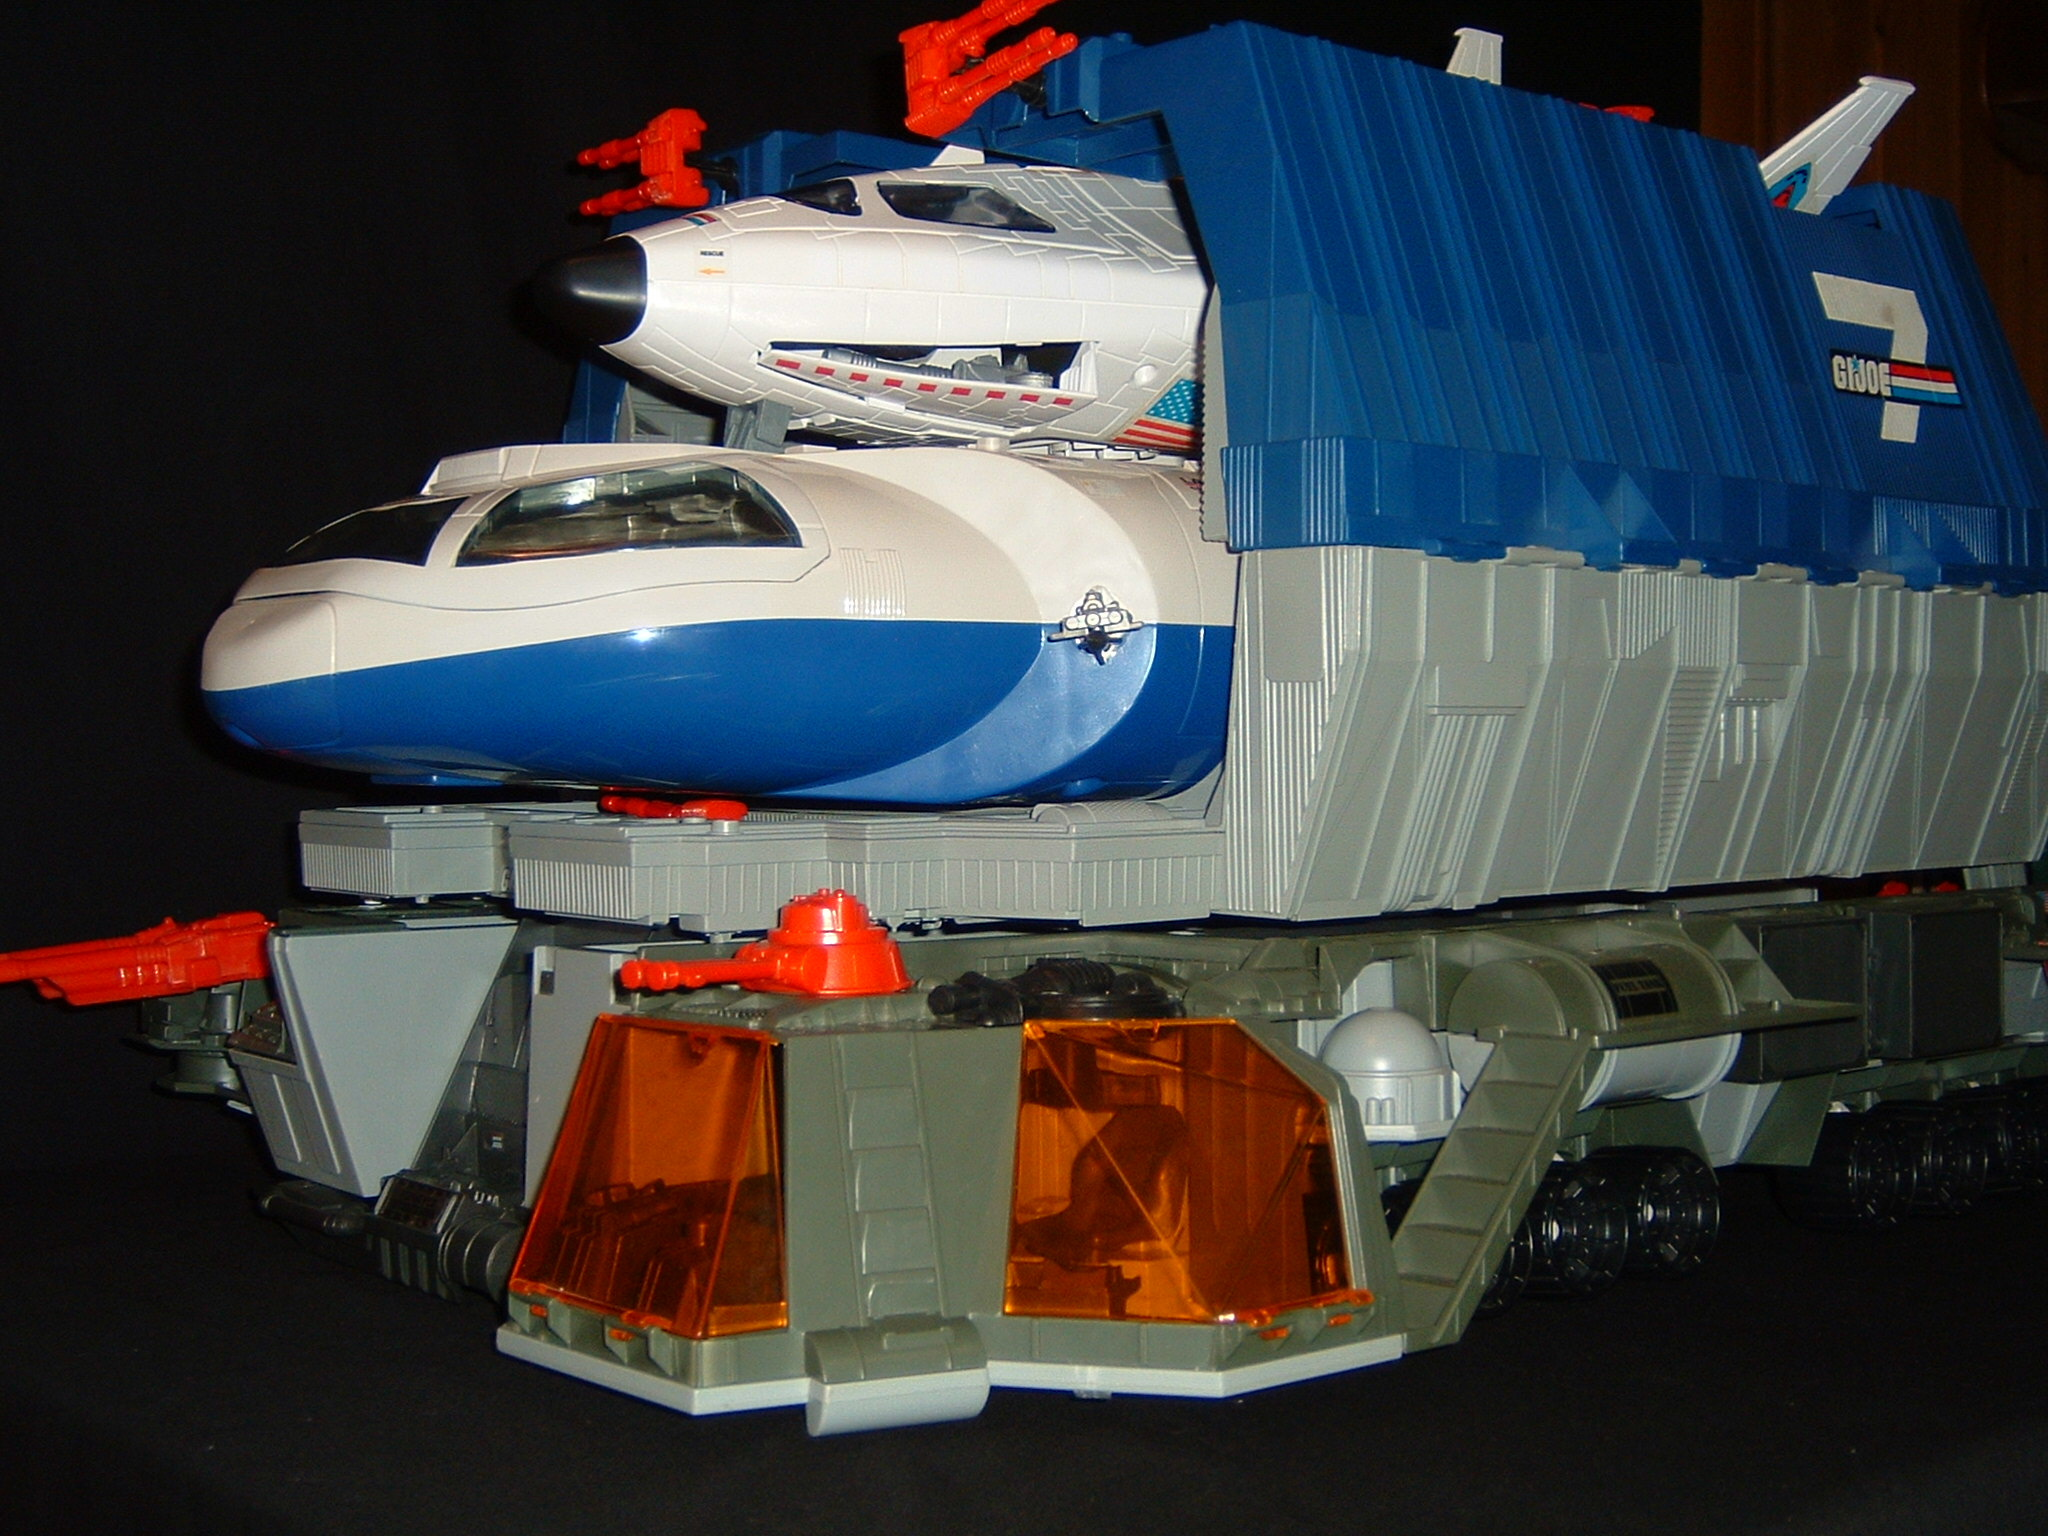 1987 GIJoe Defiant with Hardtop and Payload Complete